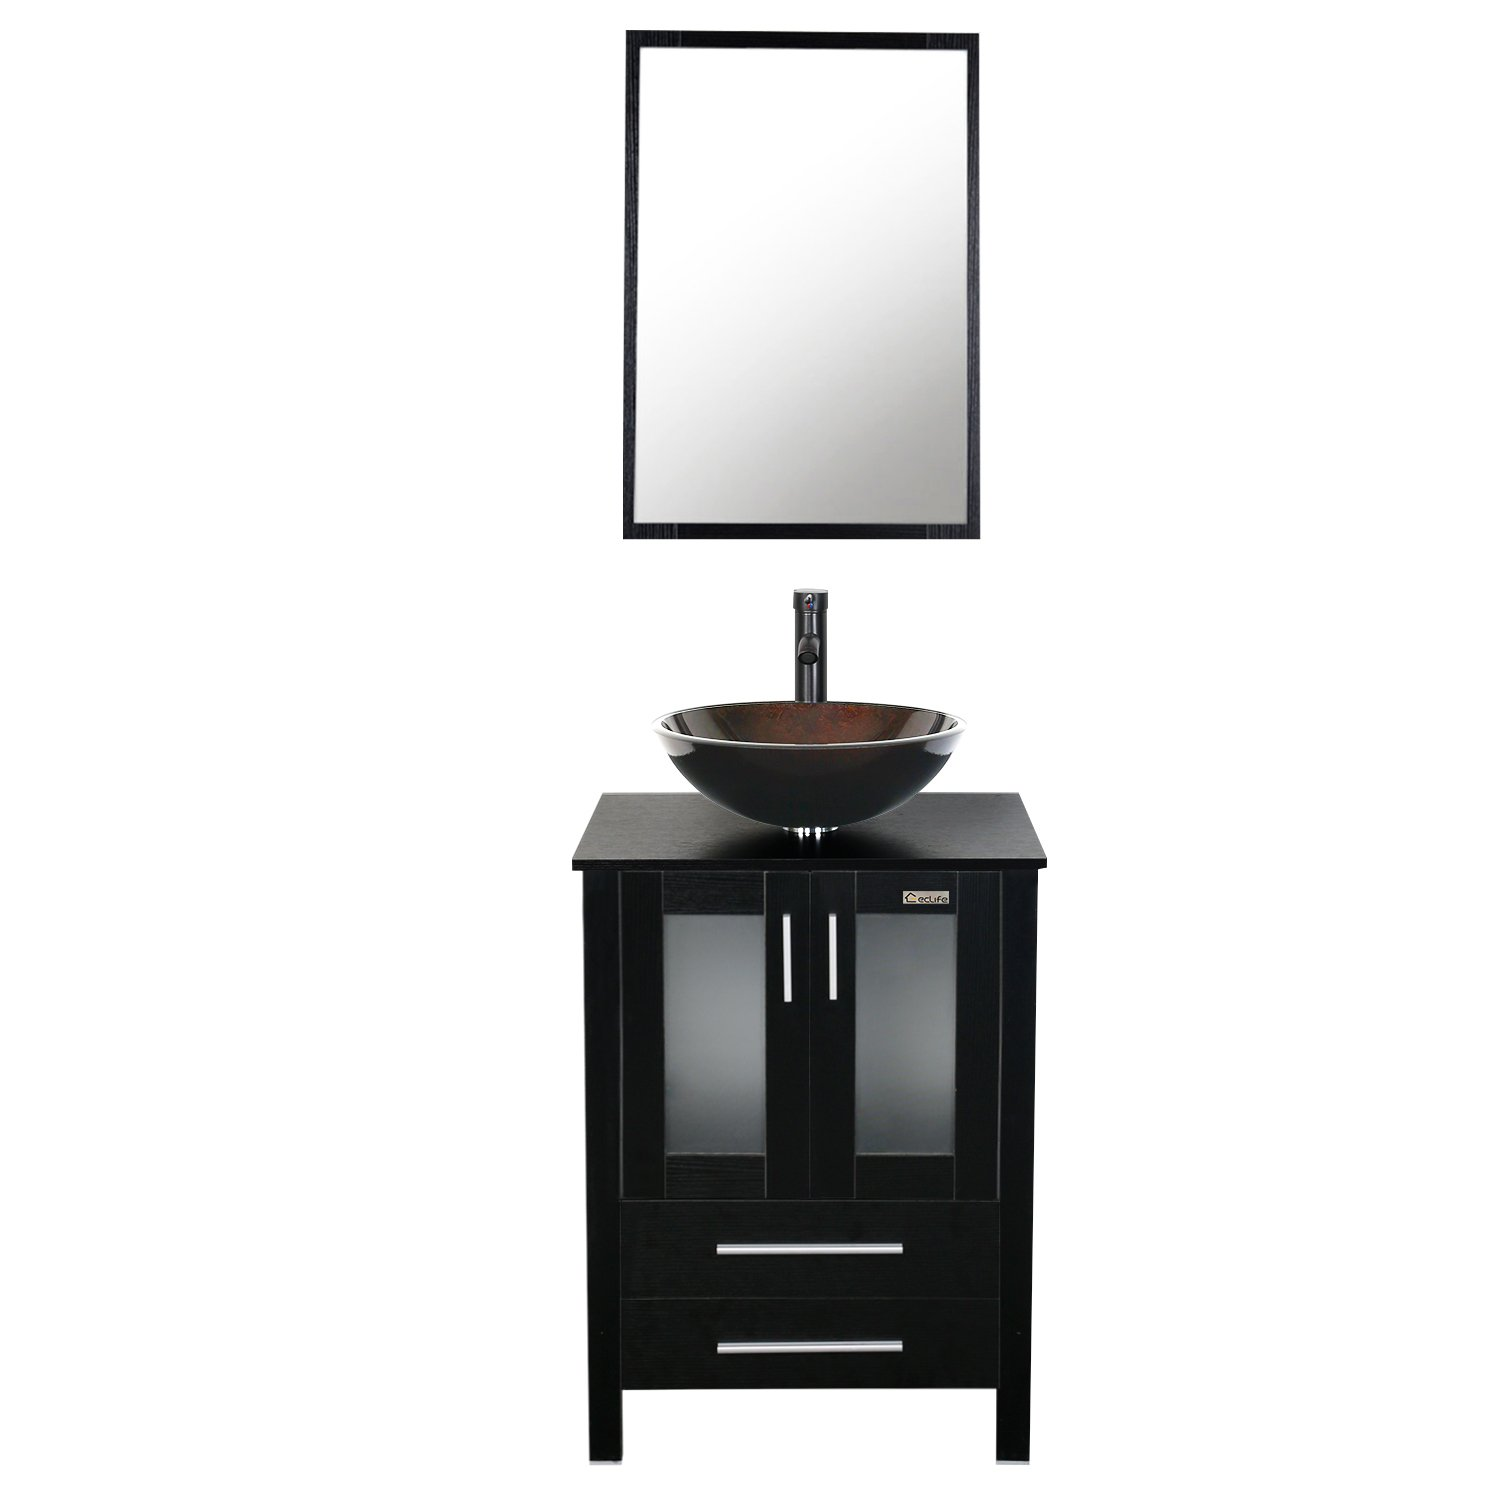 cabinet vanity with single superior hyp sink cambridge bathroom sinks silkroad vanities